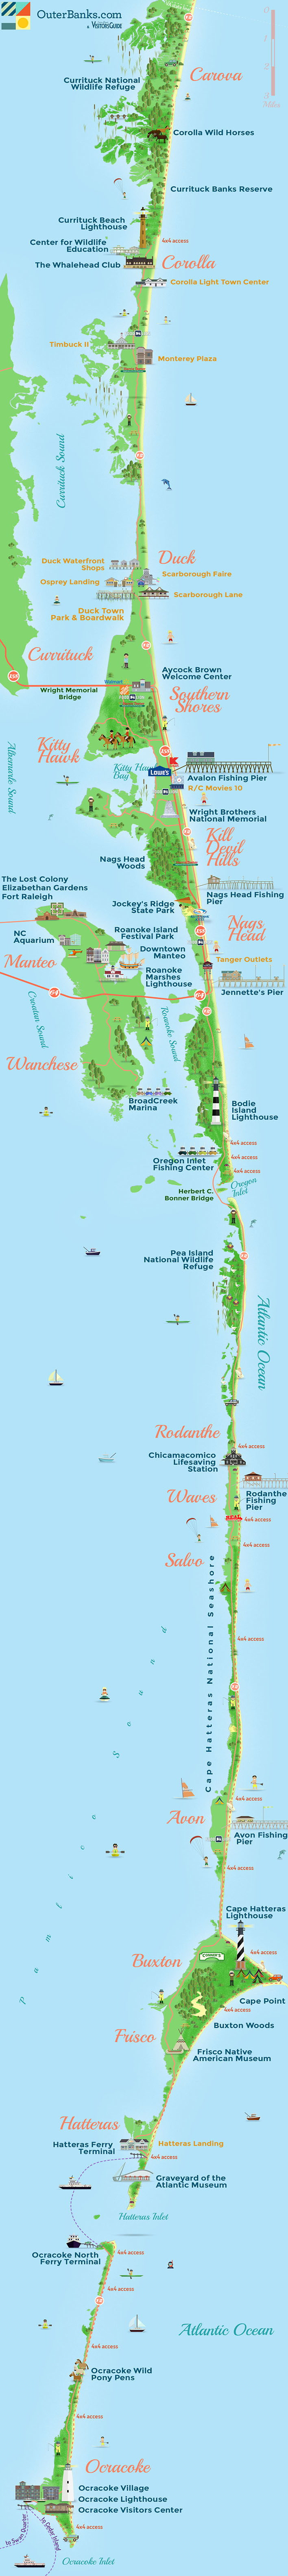 medium resolution of outer banks map